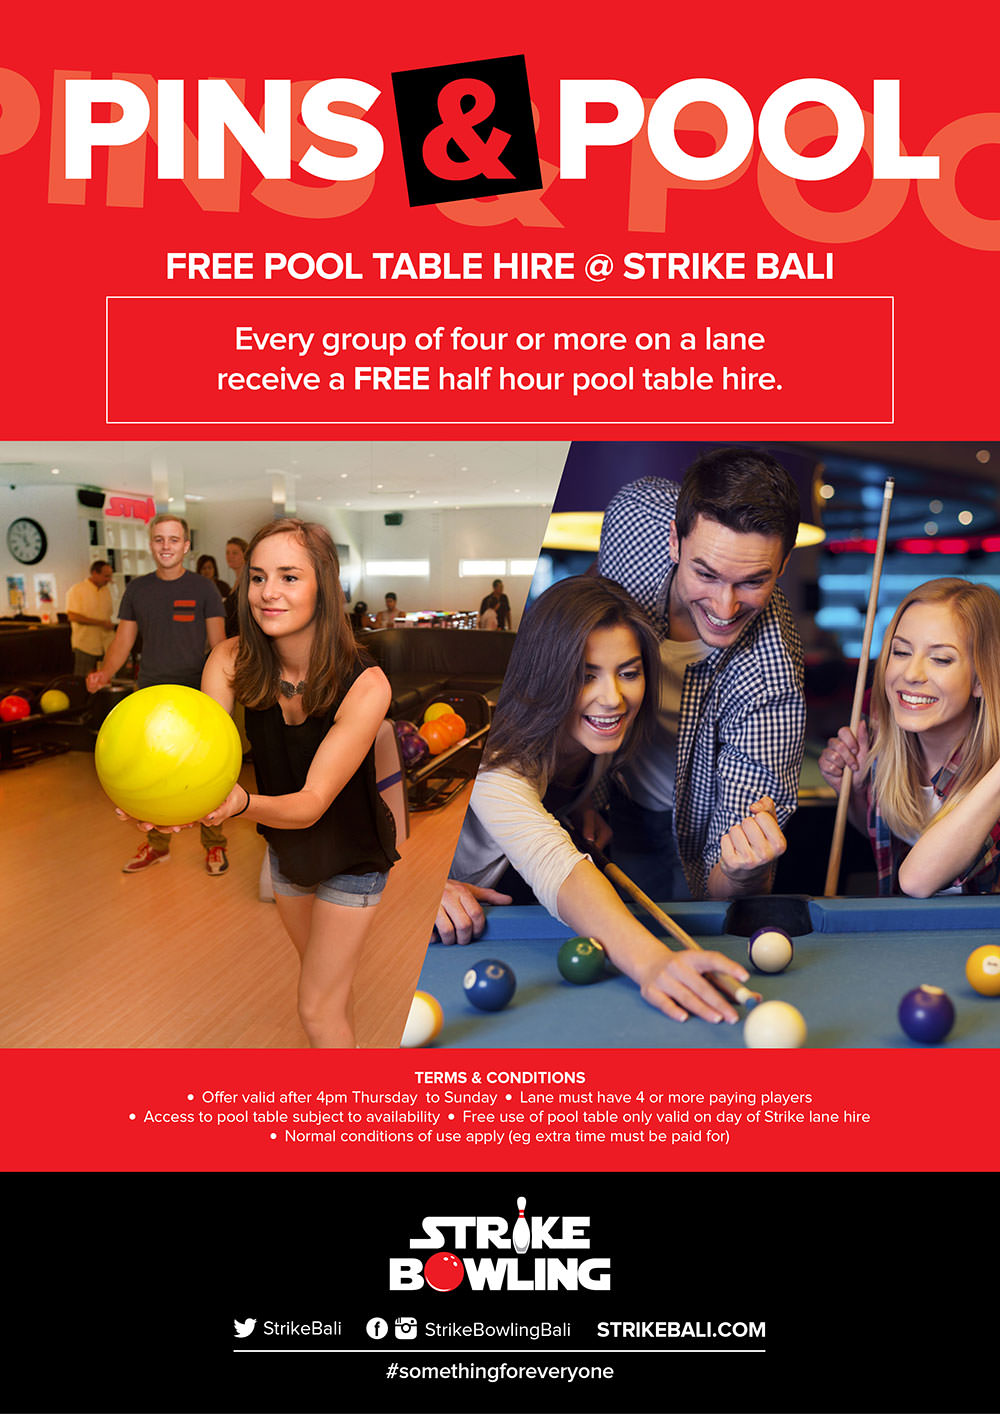 20170330-whatson-pin-pool